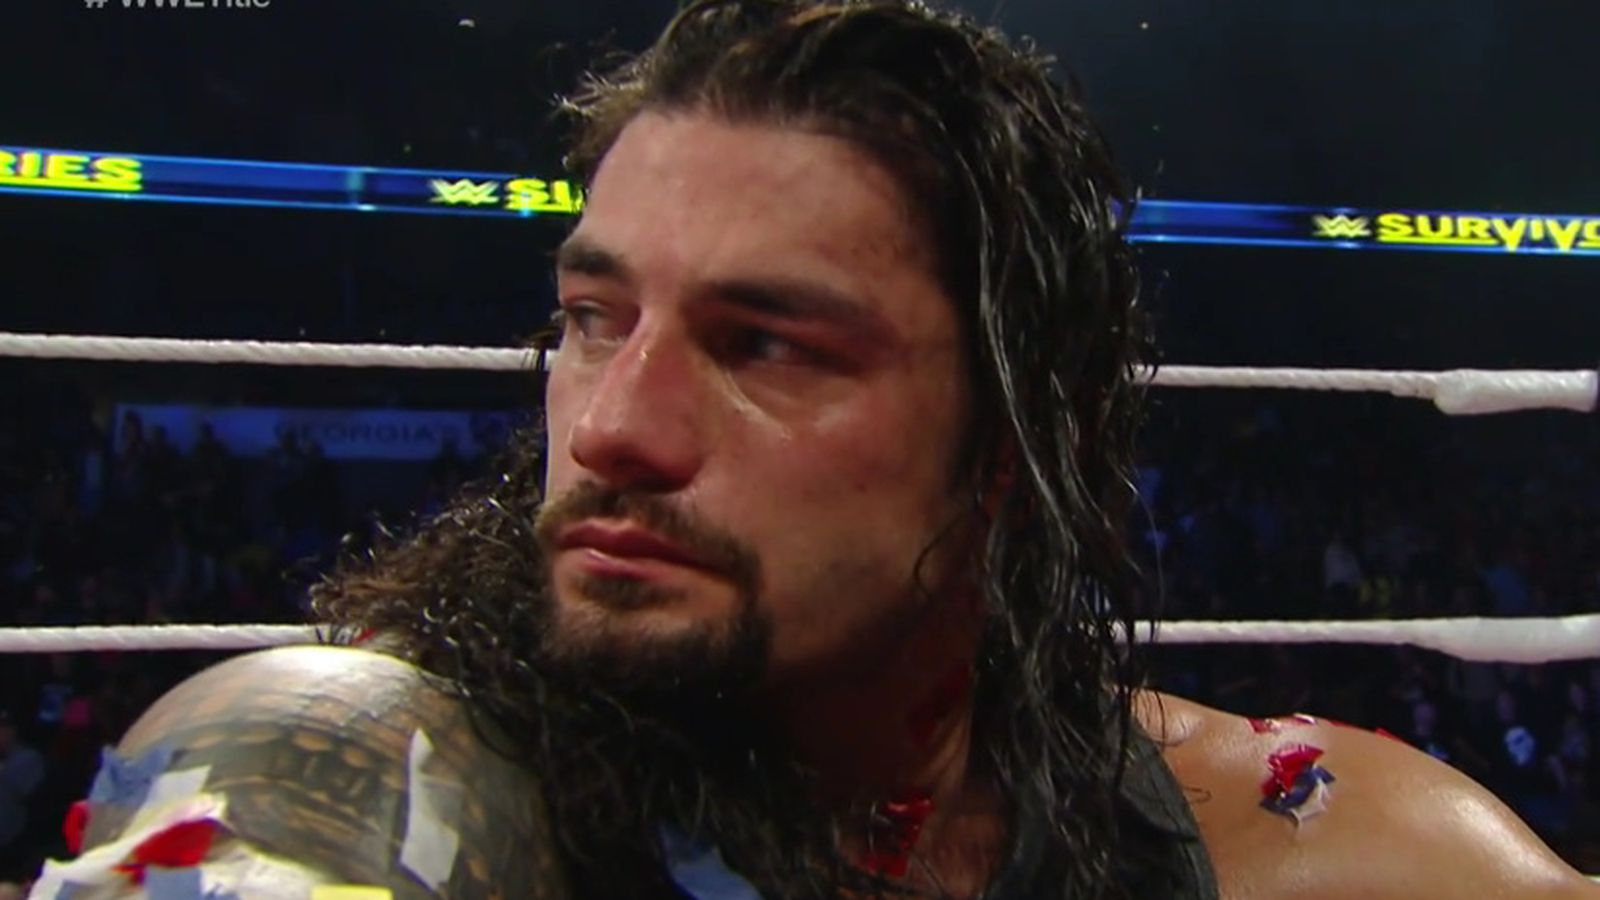 Roman Reigns Reaction To Losing The World Championship Is